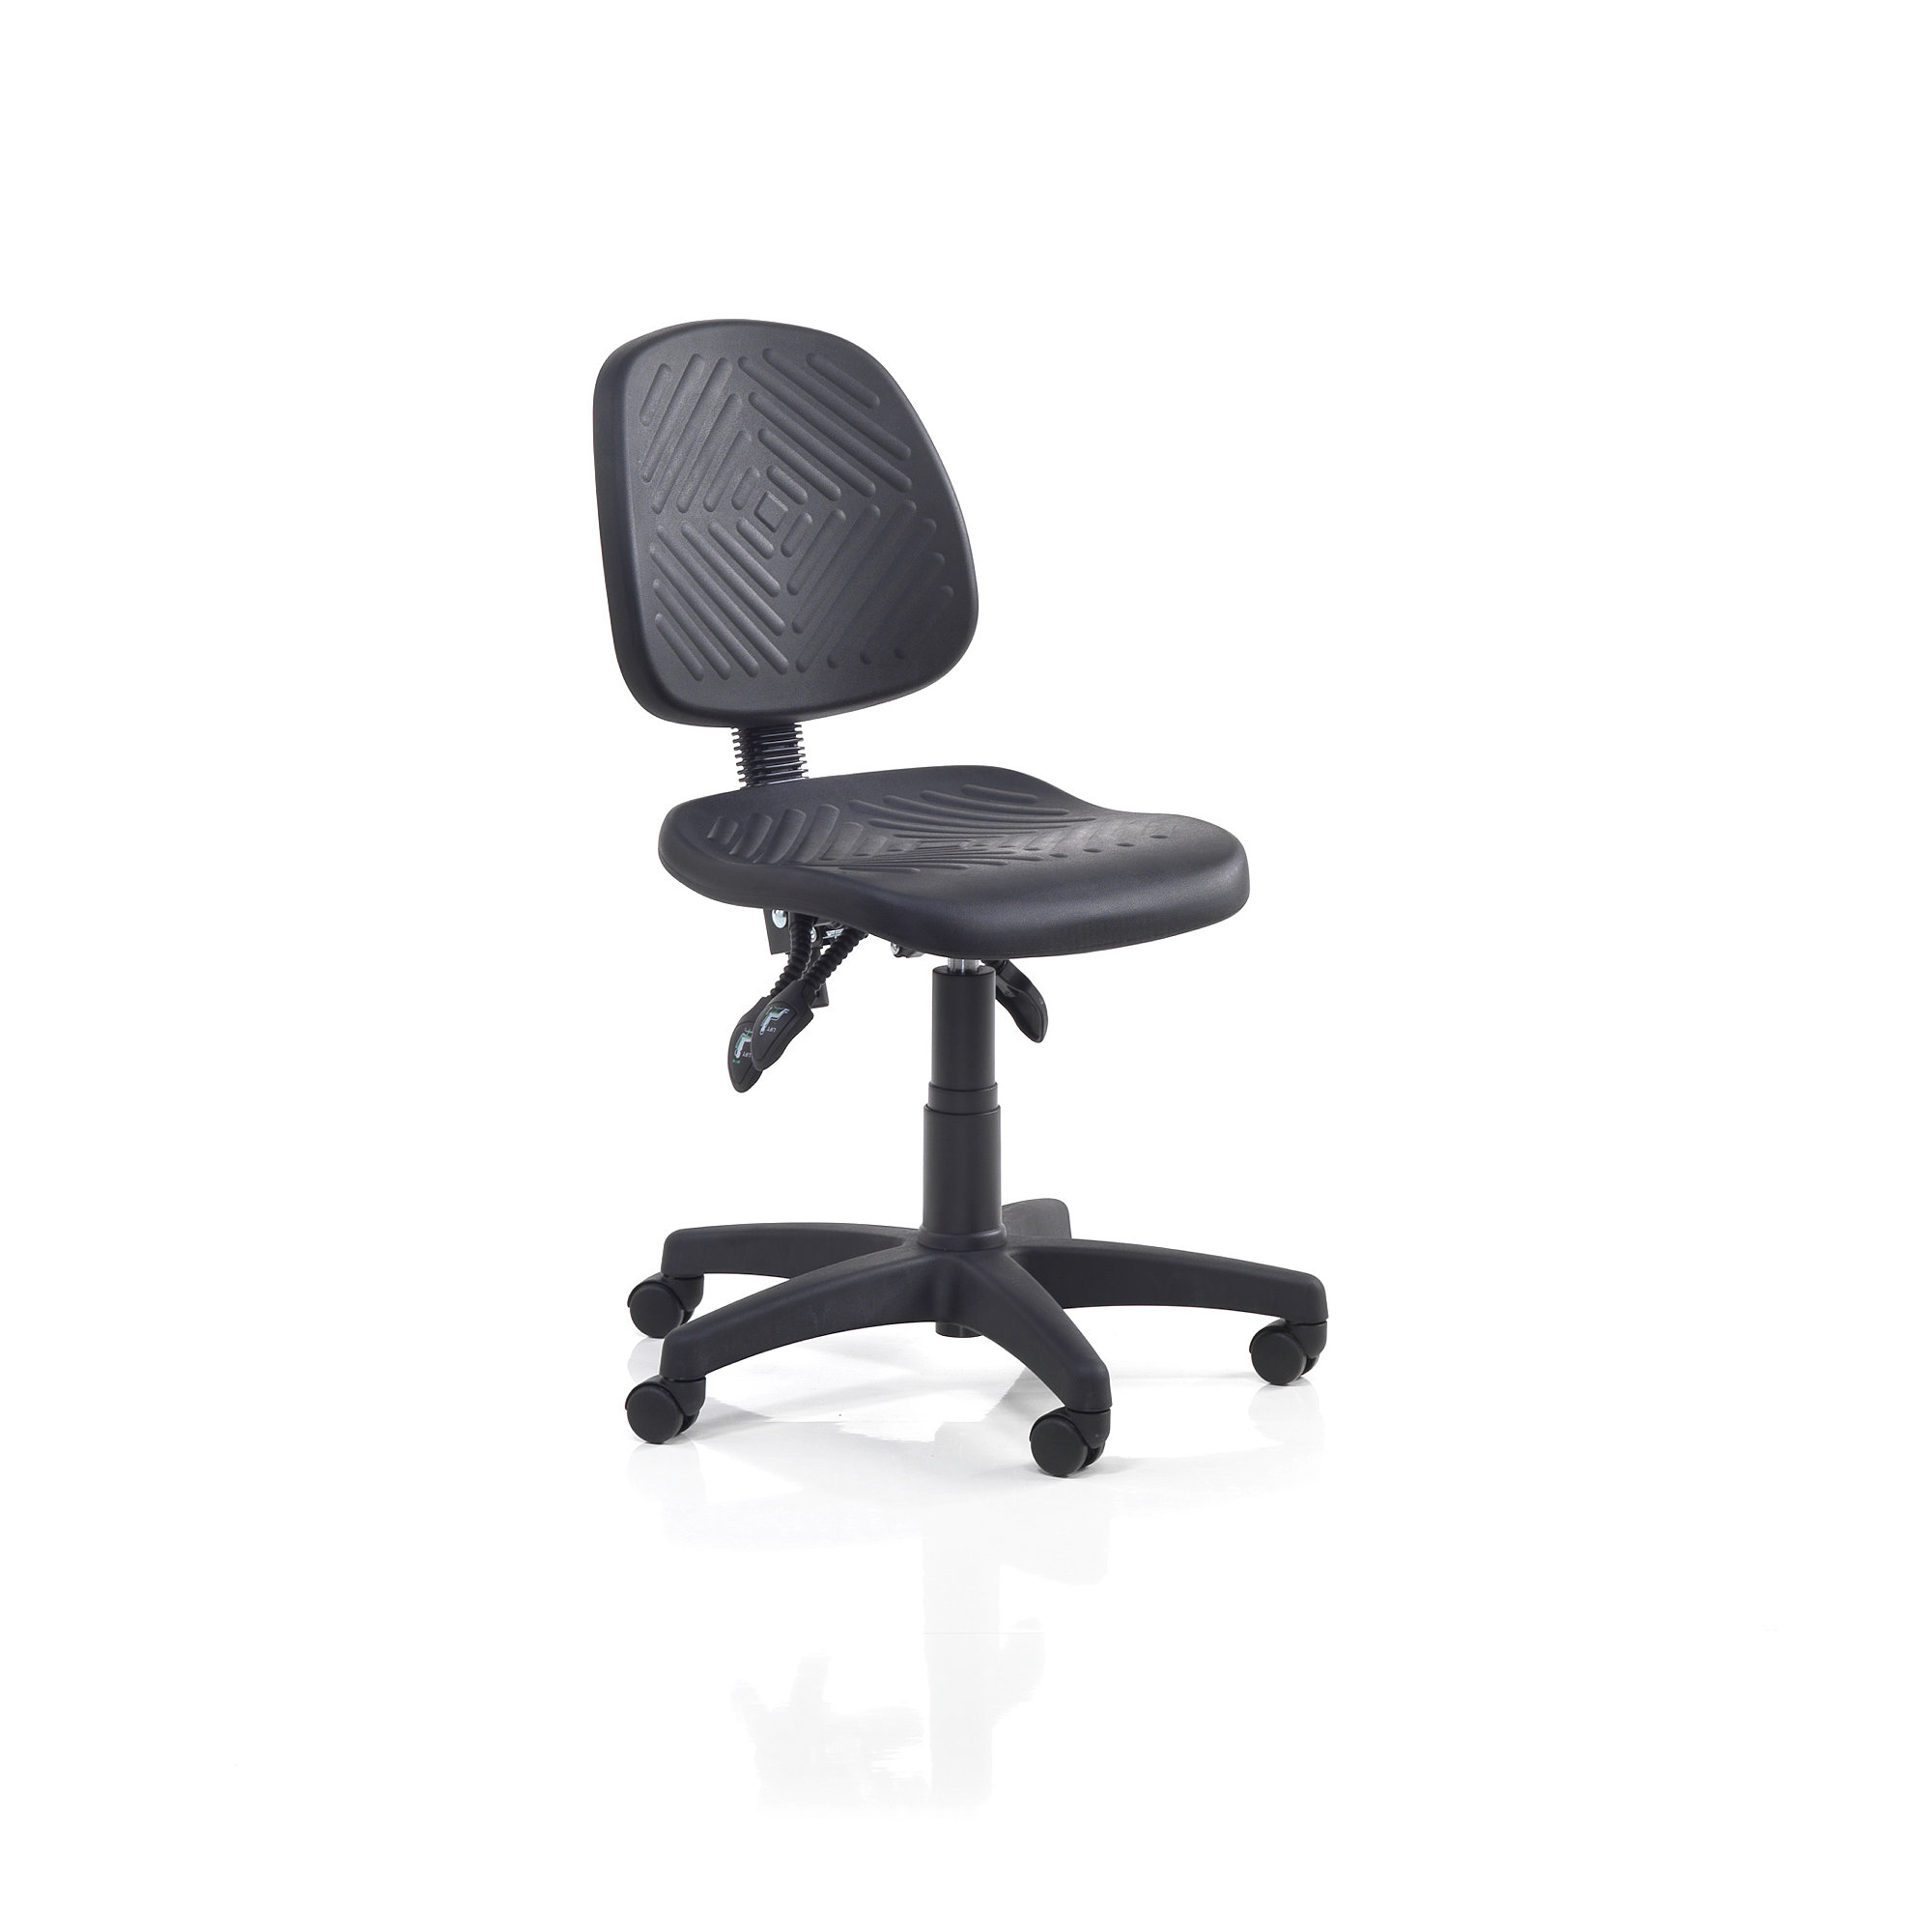 ergonomic chair brisbane batman car industrial wheels h 400 520 mm black